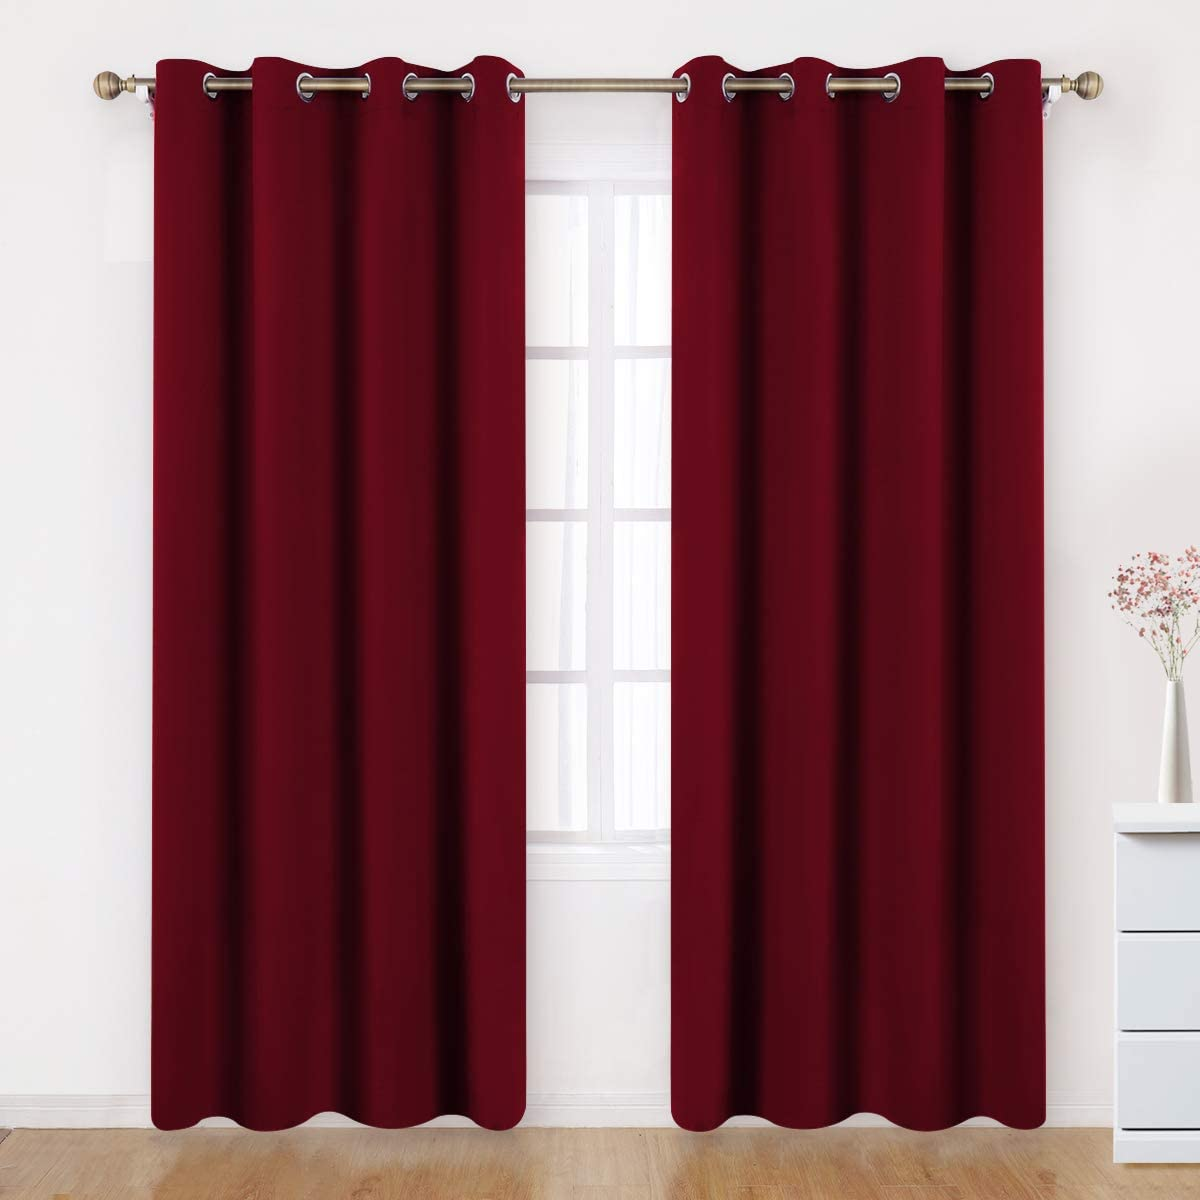 BYSURE Burgundy Blackout Curtains 52 x 96 Inches Long 2 Panels for Bedroom Window Treatment Energy Saving Thermal Drapes Burgundy red Room Darkening Curtains (Burgundy red